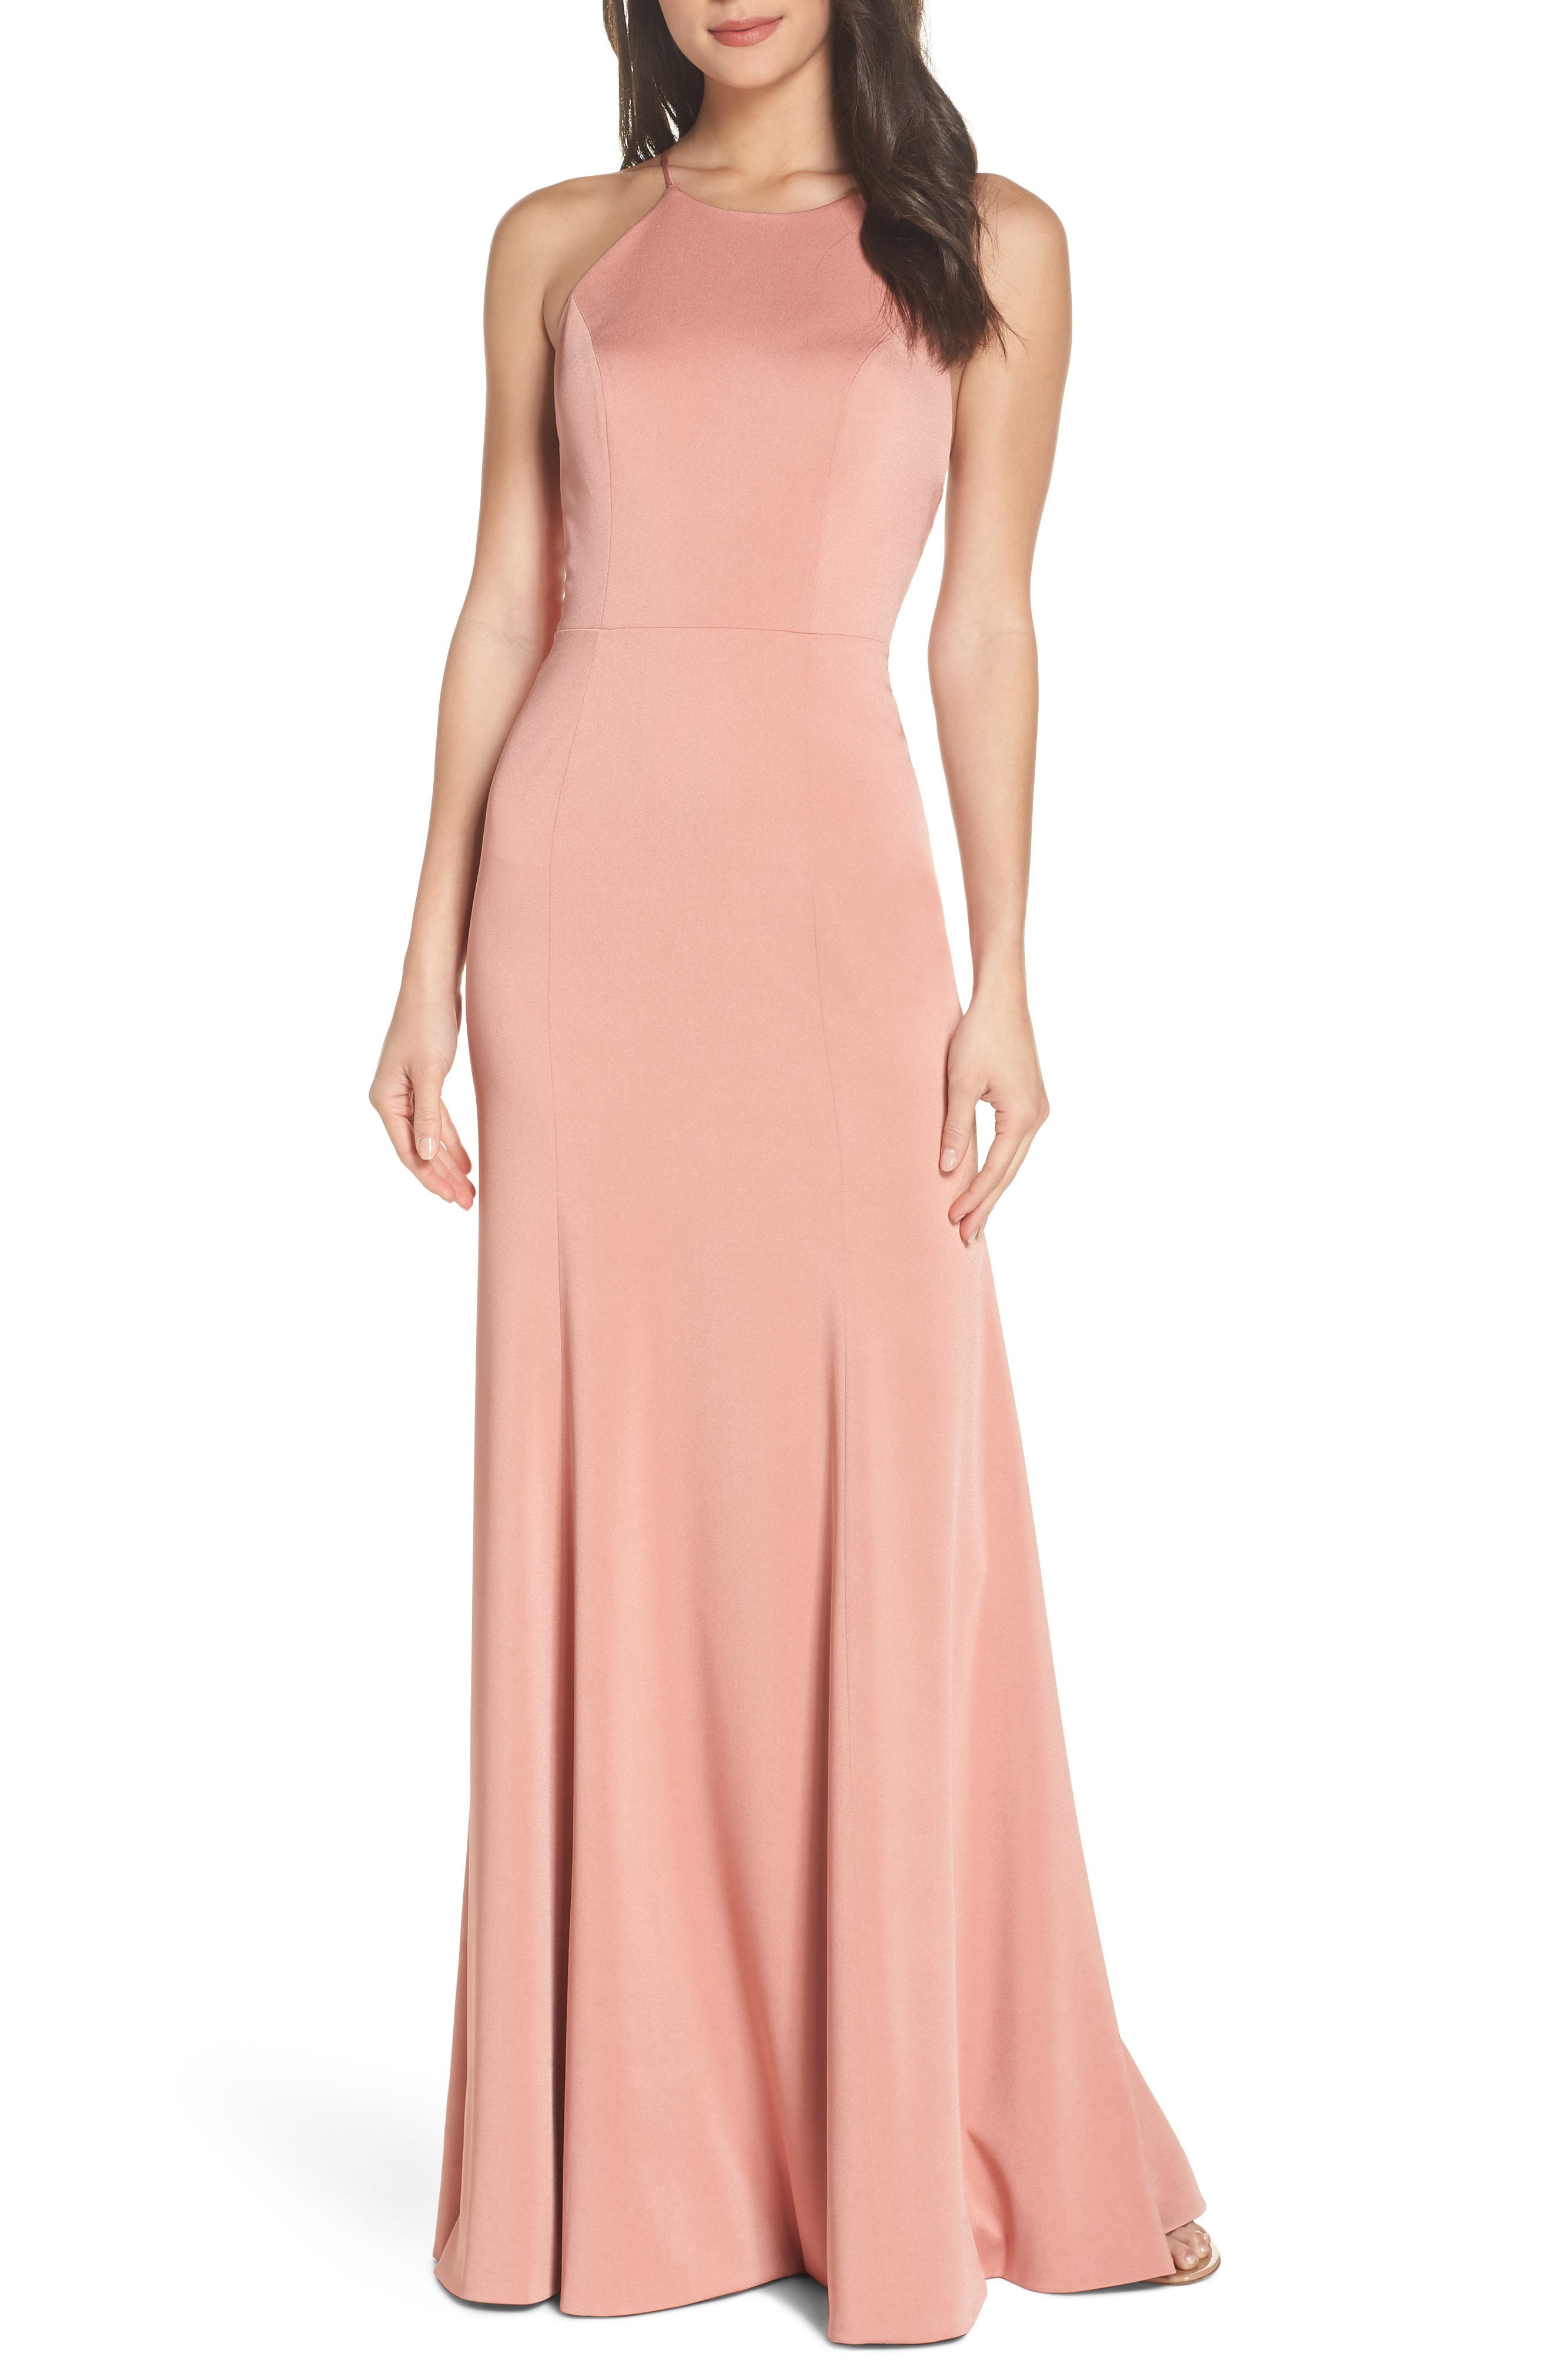 Naomi Luxe Crepe Halter Gown,                             Main thumbnail 1, color,                             Sedona Sunset